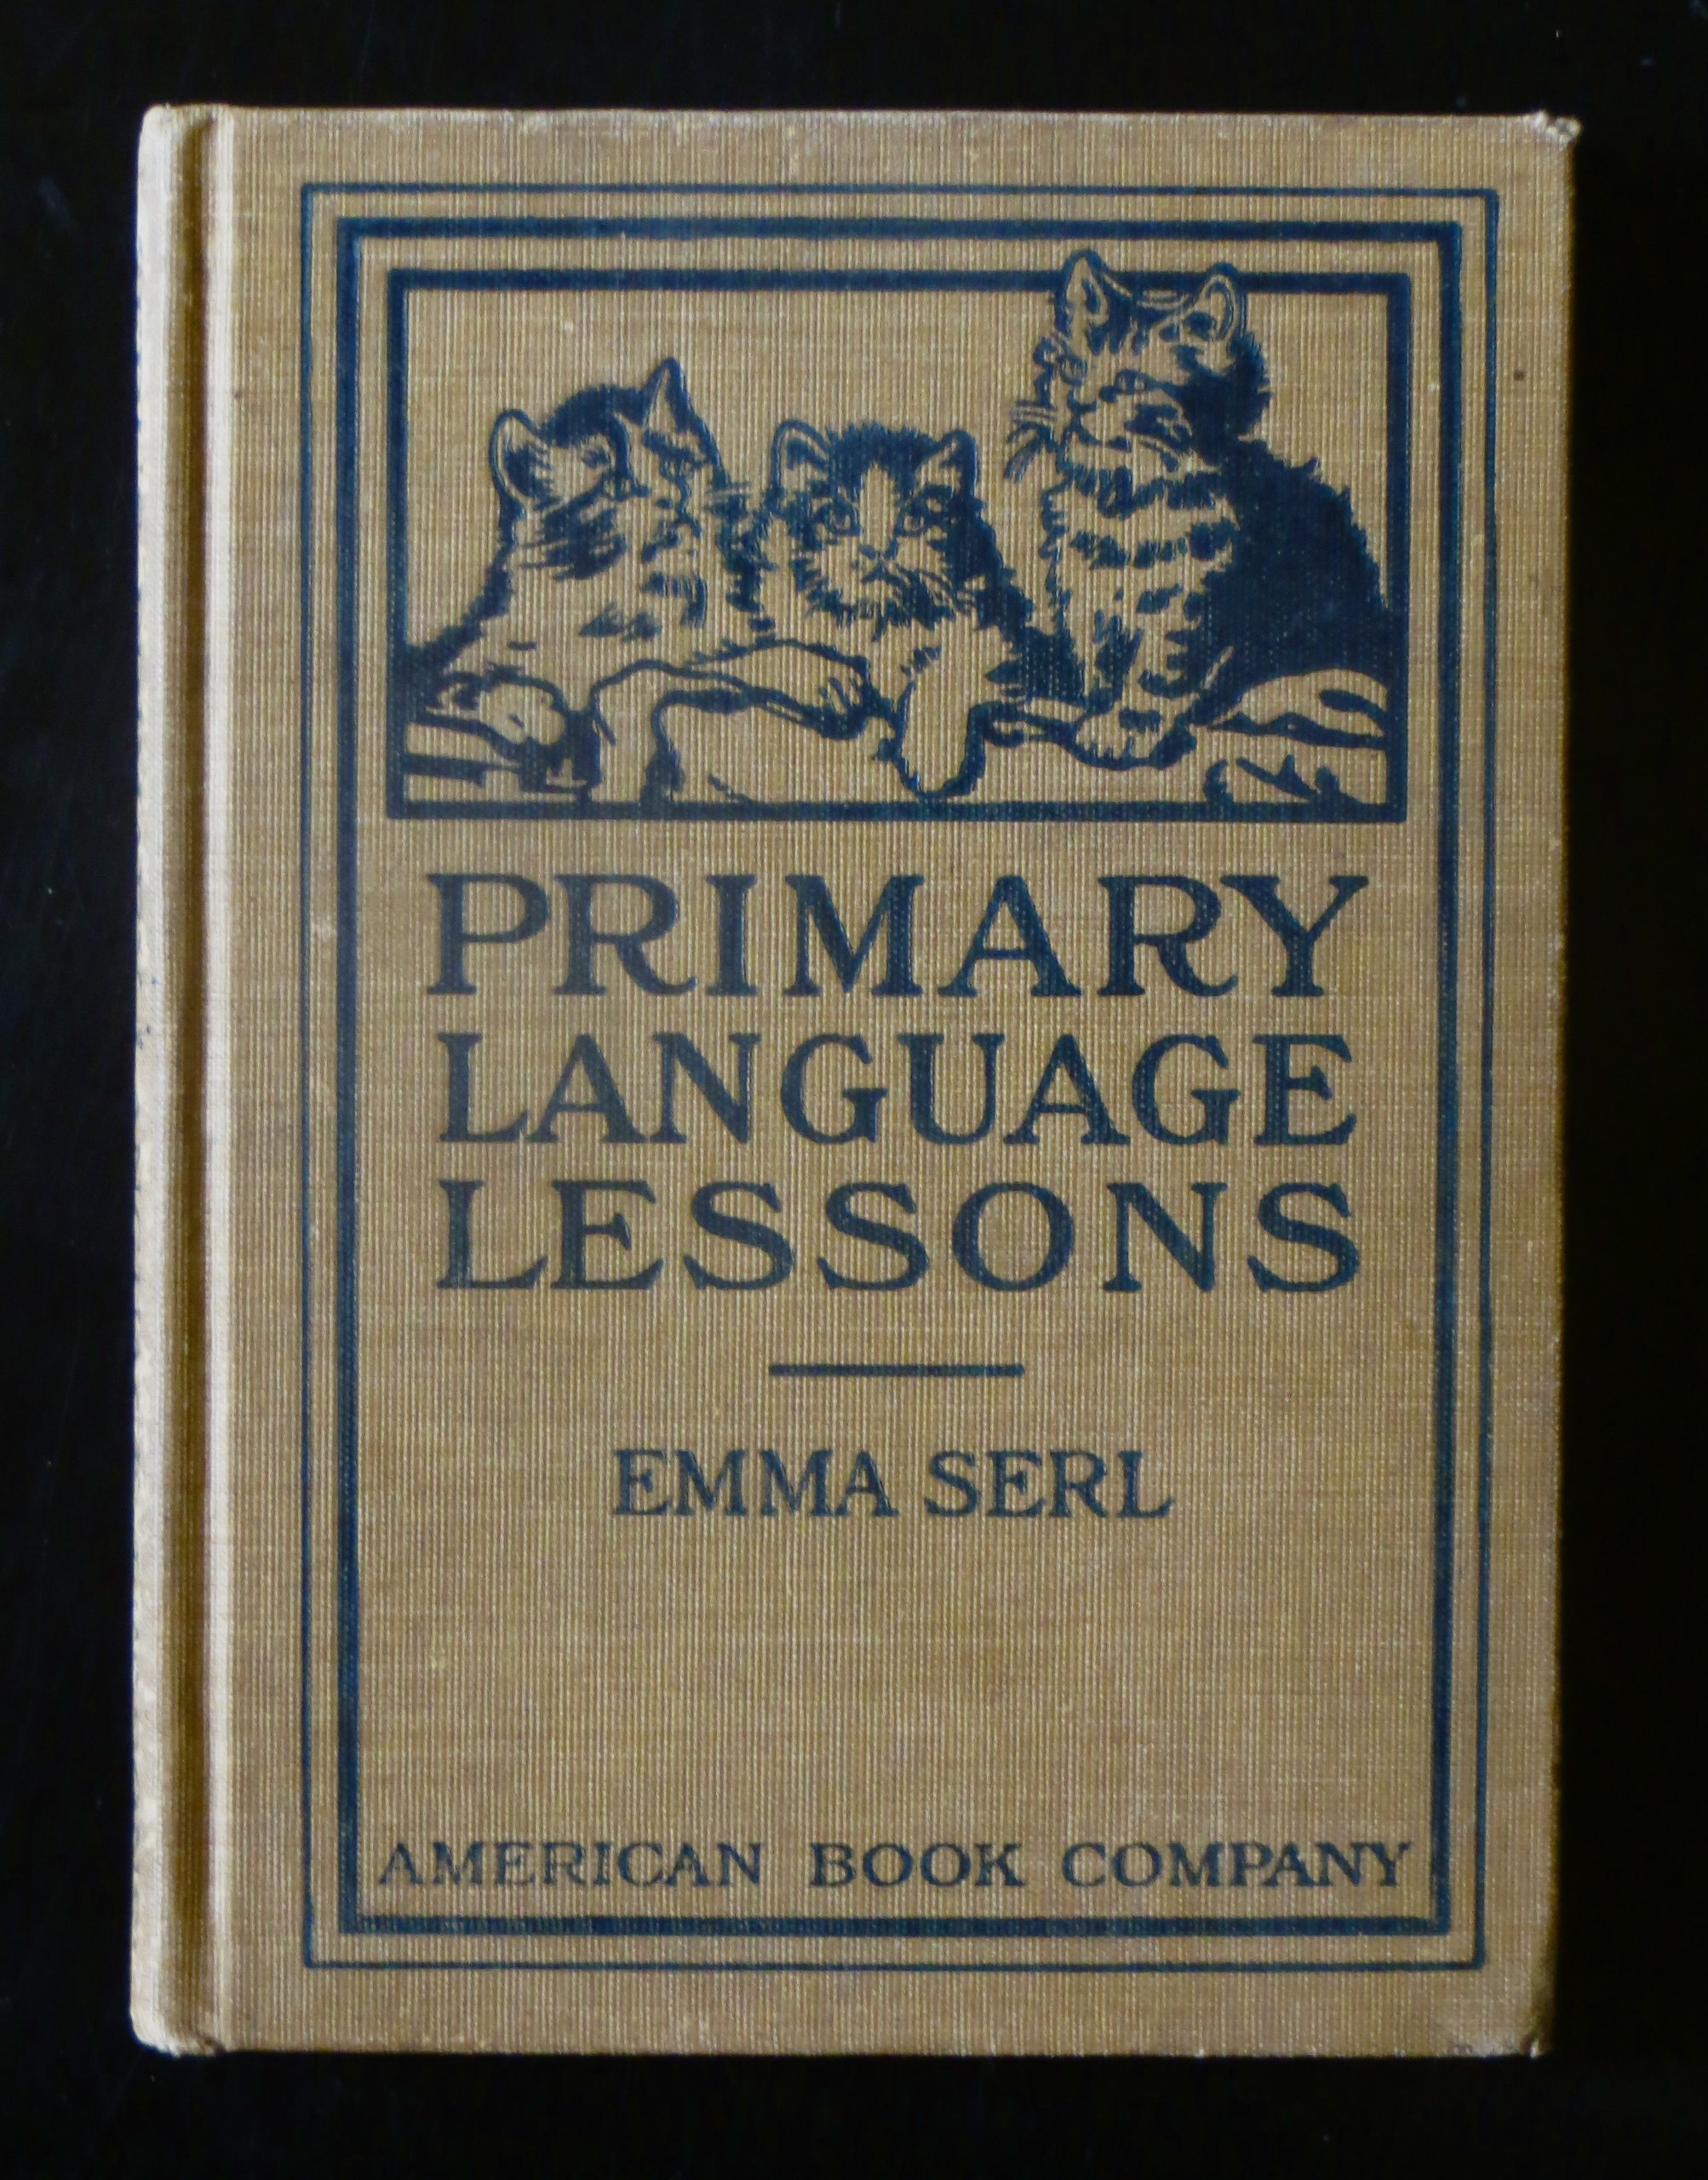 primary language lessons by emma serl